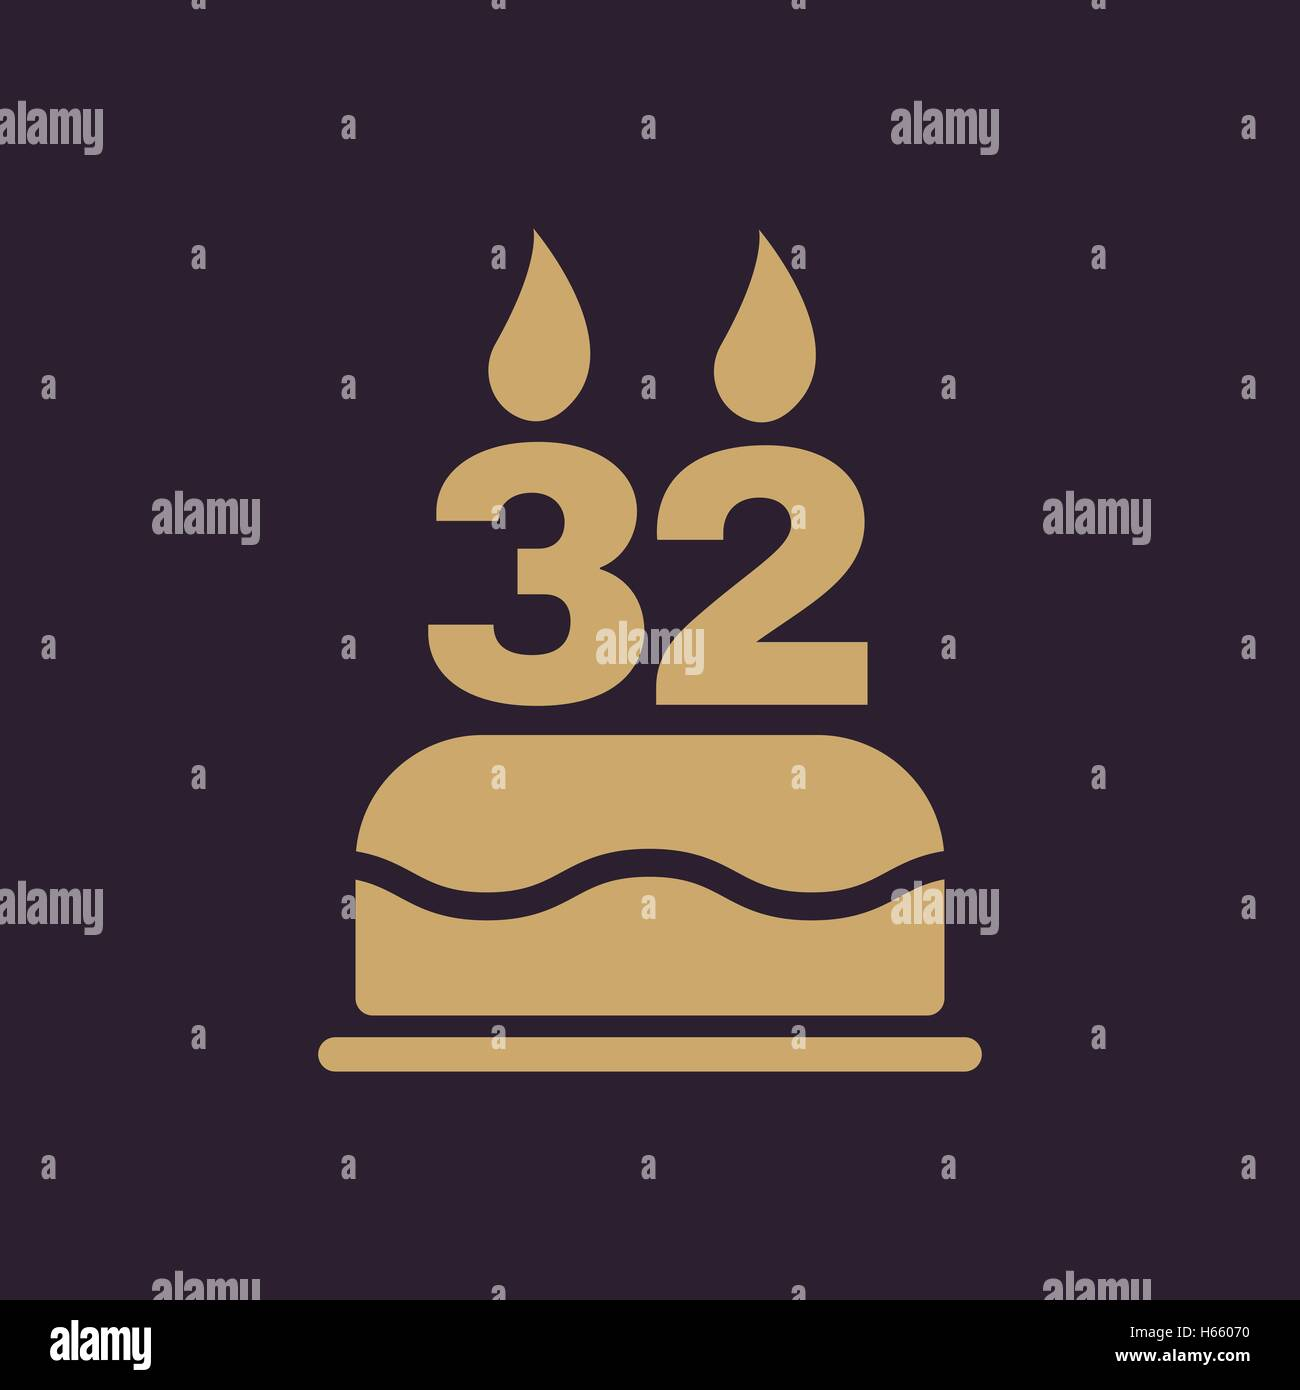 The Birthday Cake With Candles In The Form Of Number 32 Icon Stock